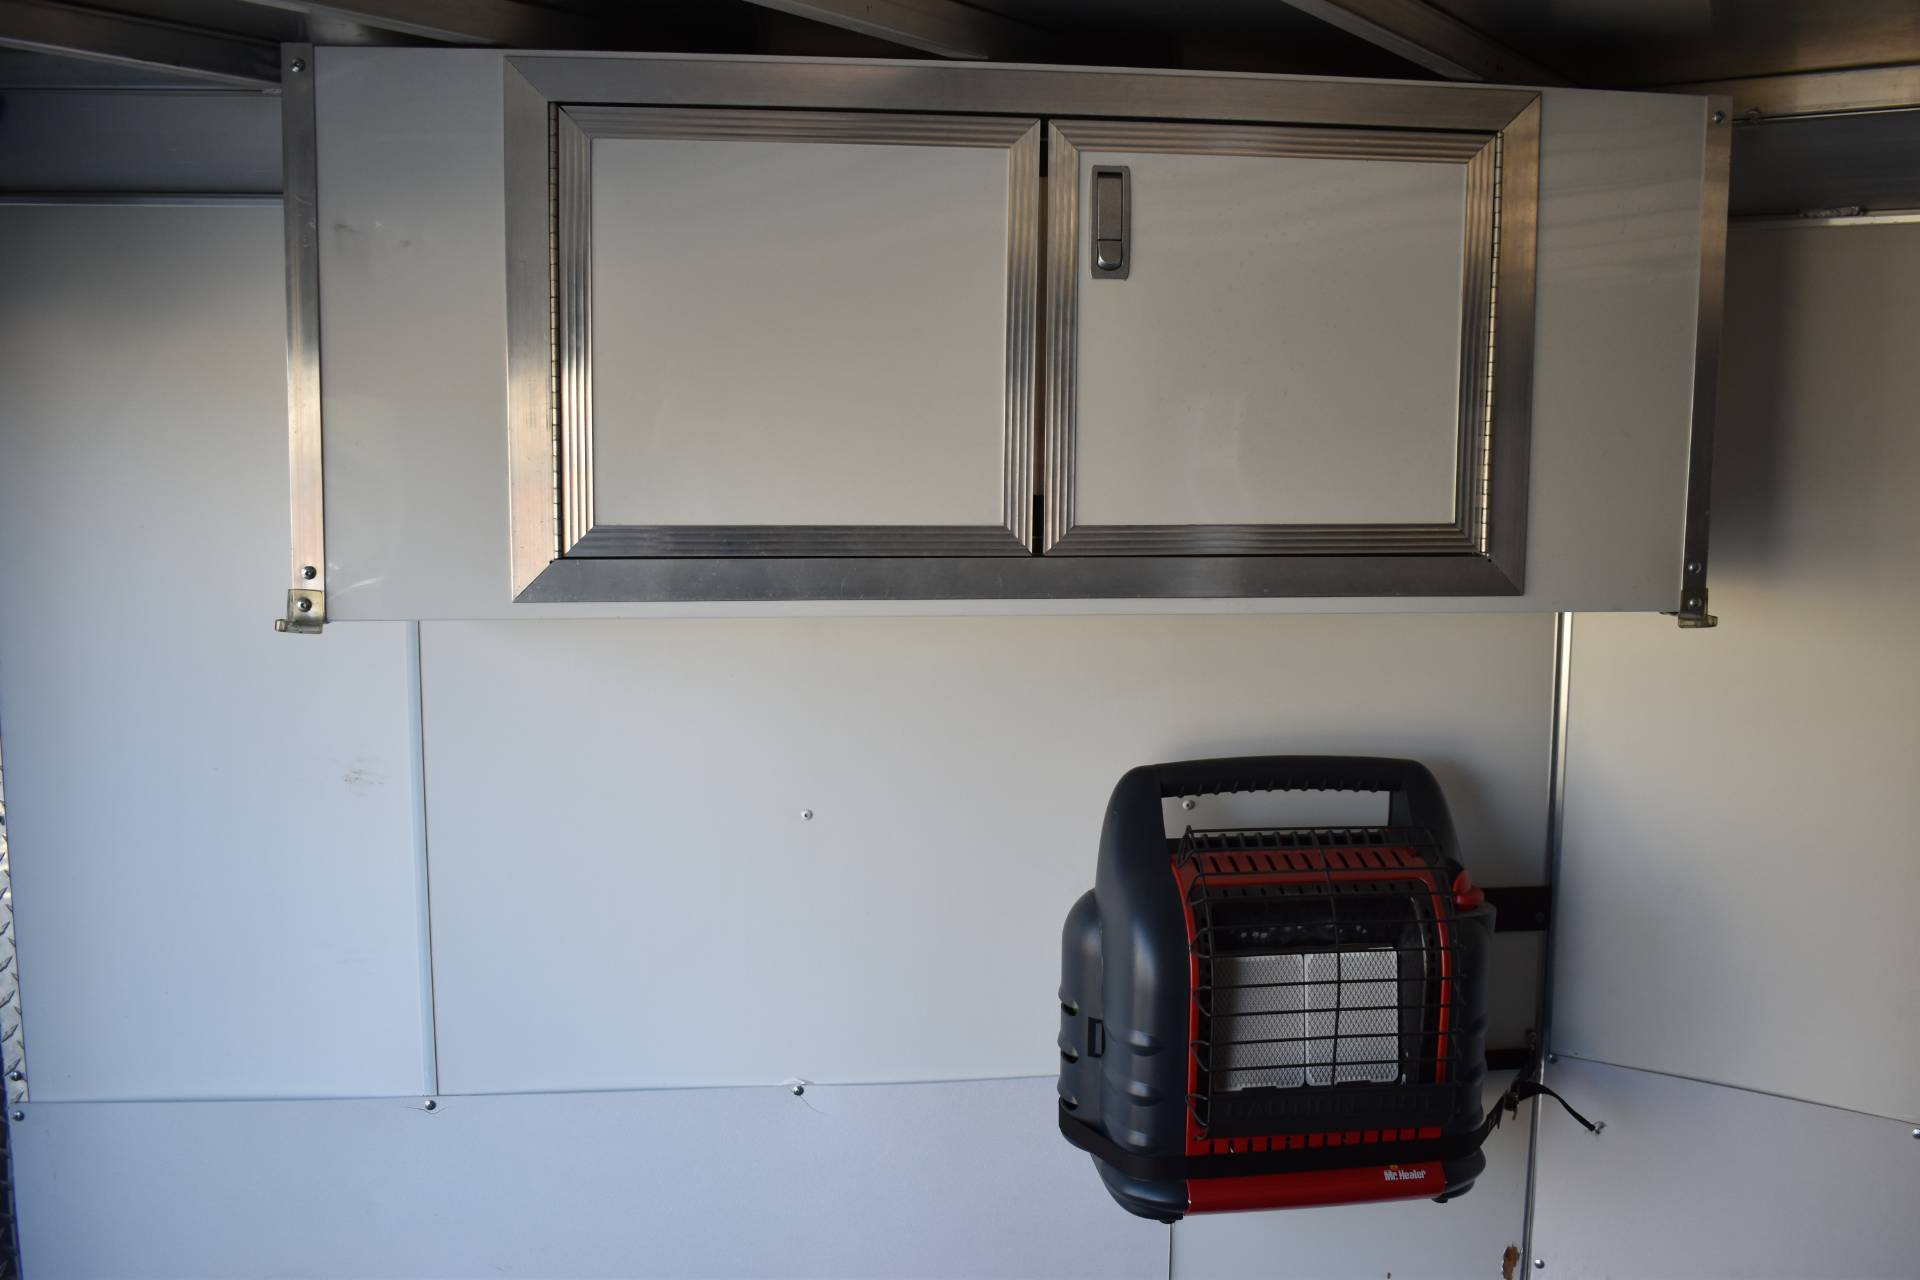 2012 ALCOM 4 Place snowmobile trailer in Boise, Idaho - Photo 14